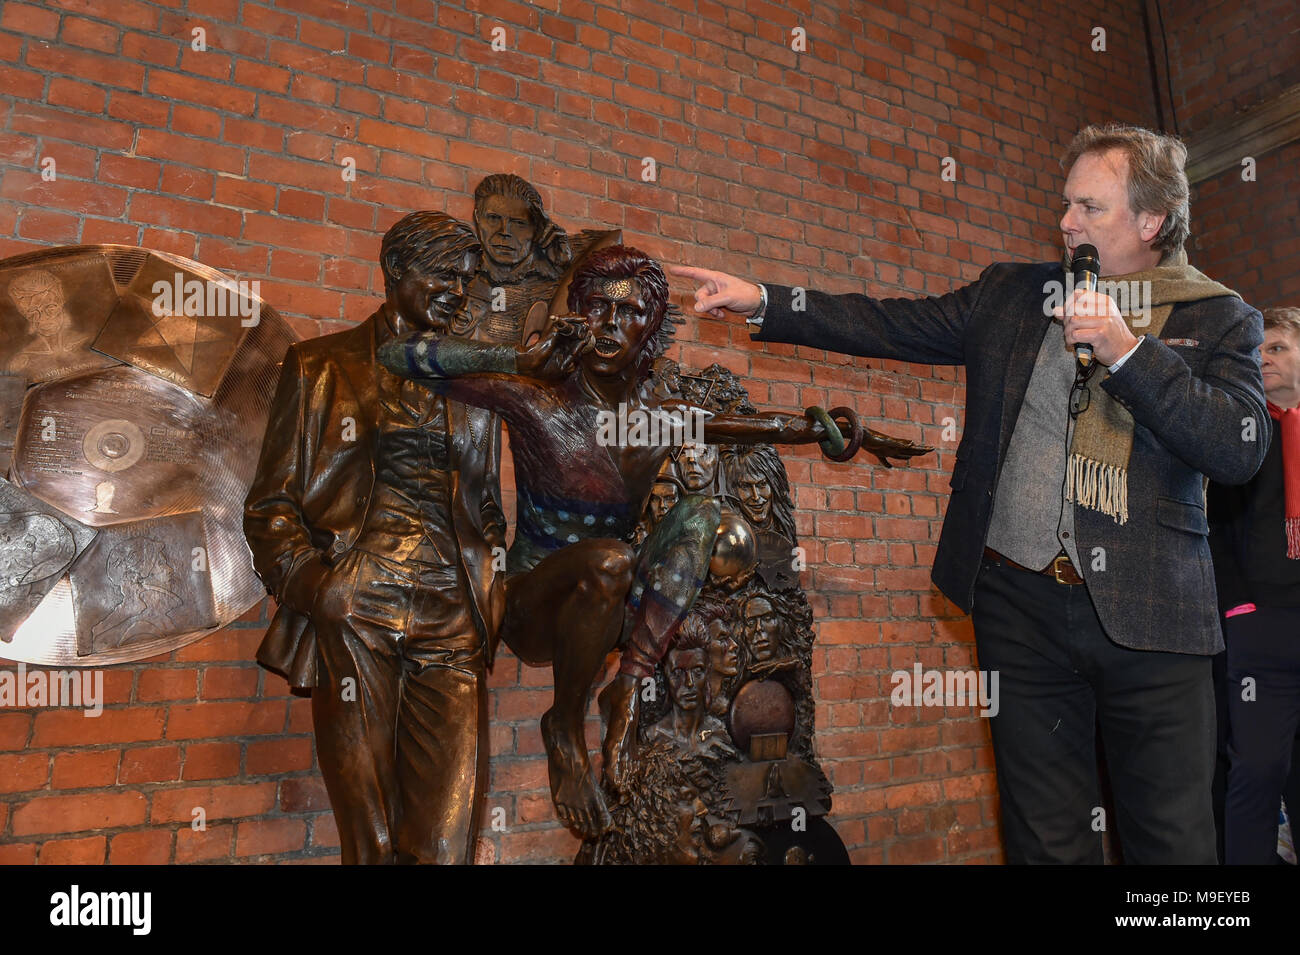 Aylesbury, United Kingdom. 25 March 2018. A David Bowie statue has been unveiled in Aylesbury. The statue was conceived by David Stopps who raised the £100,000 to complete the project. The sculptor, Andrew Sinclair, was also at the unveiling. Pictured: Andrew Sinclair  Credit: Peter Manning/Alamy Live News - Stock Image